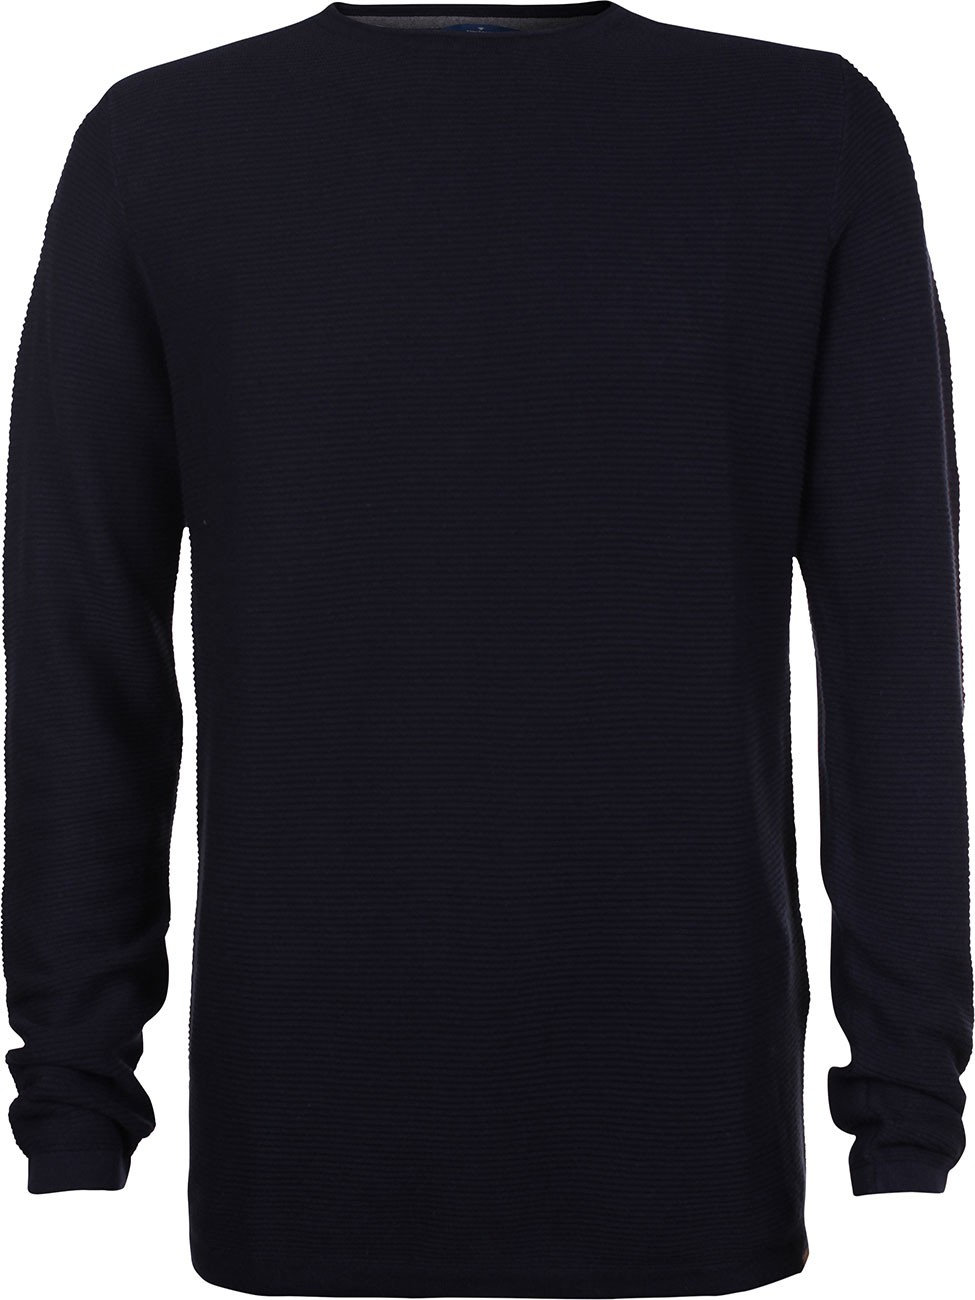 tom tailor herren pullover structured sweater tom tailor herren. Black Bedroom Furniture Sets. Home Design Ideas